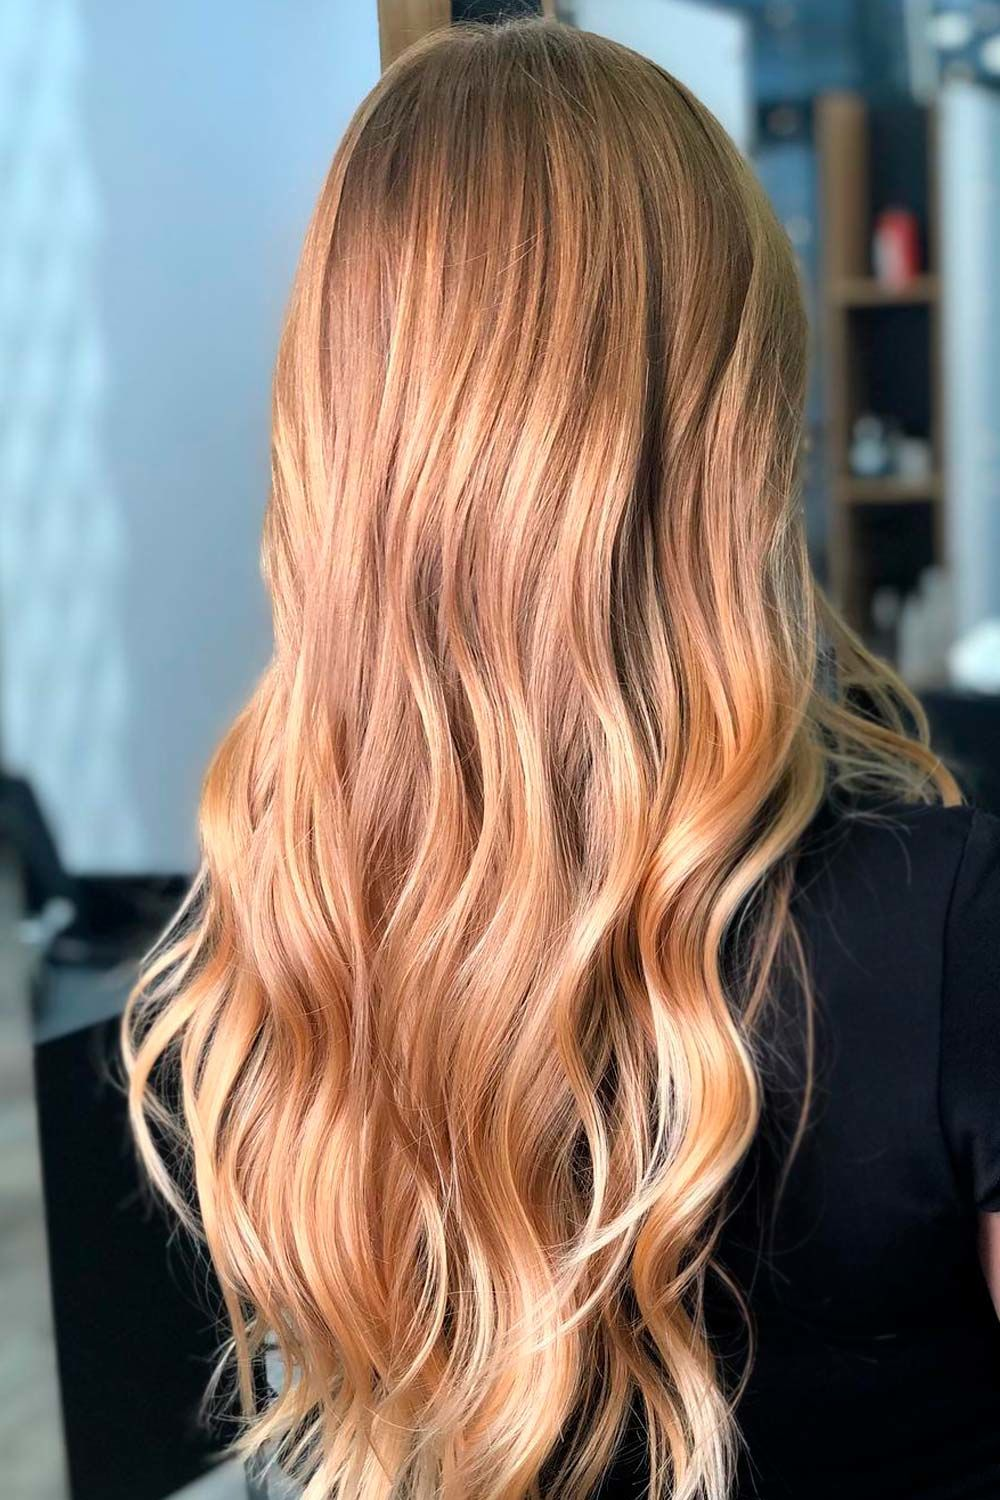 Golden Blonde Hair With Long Layers